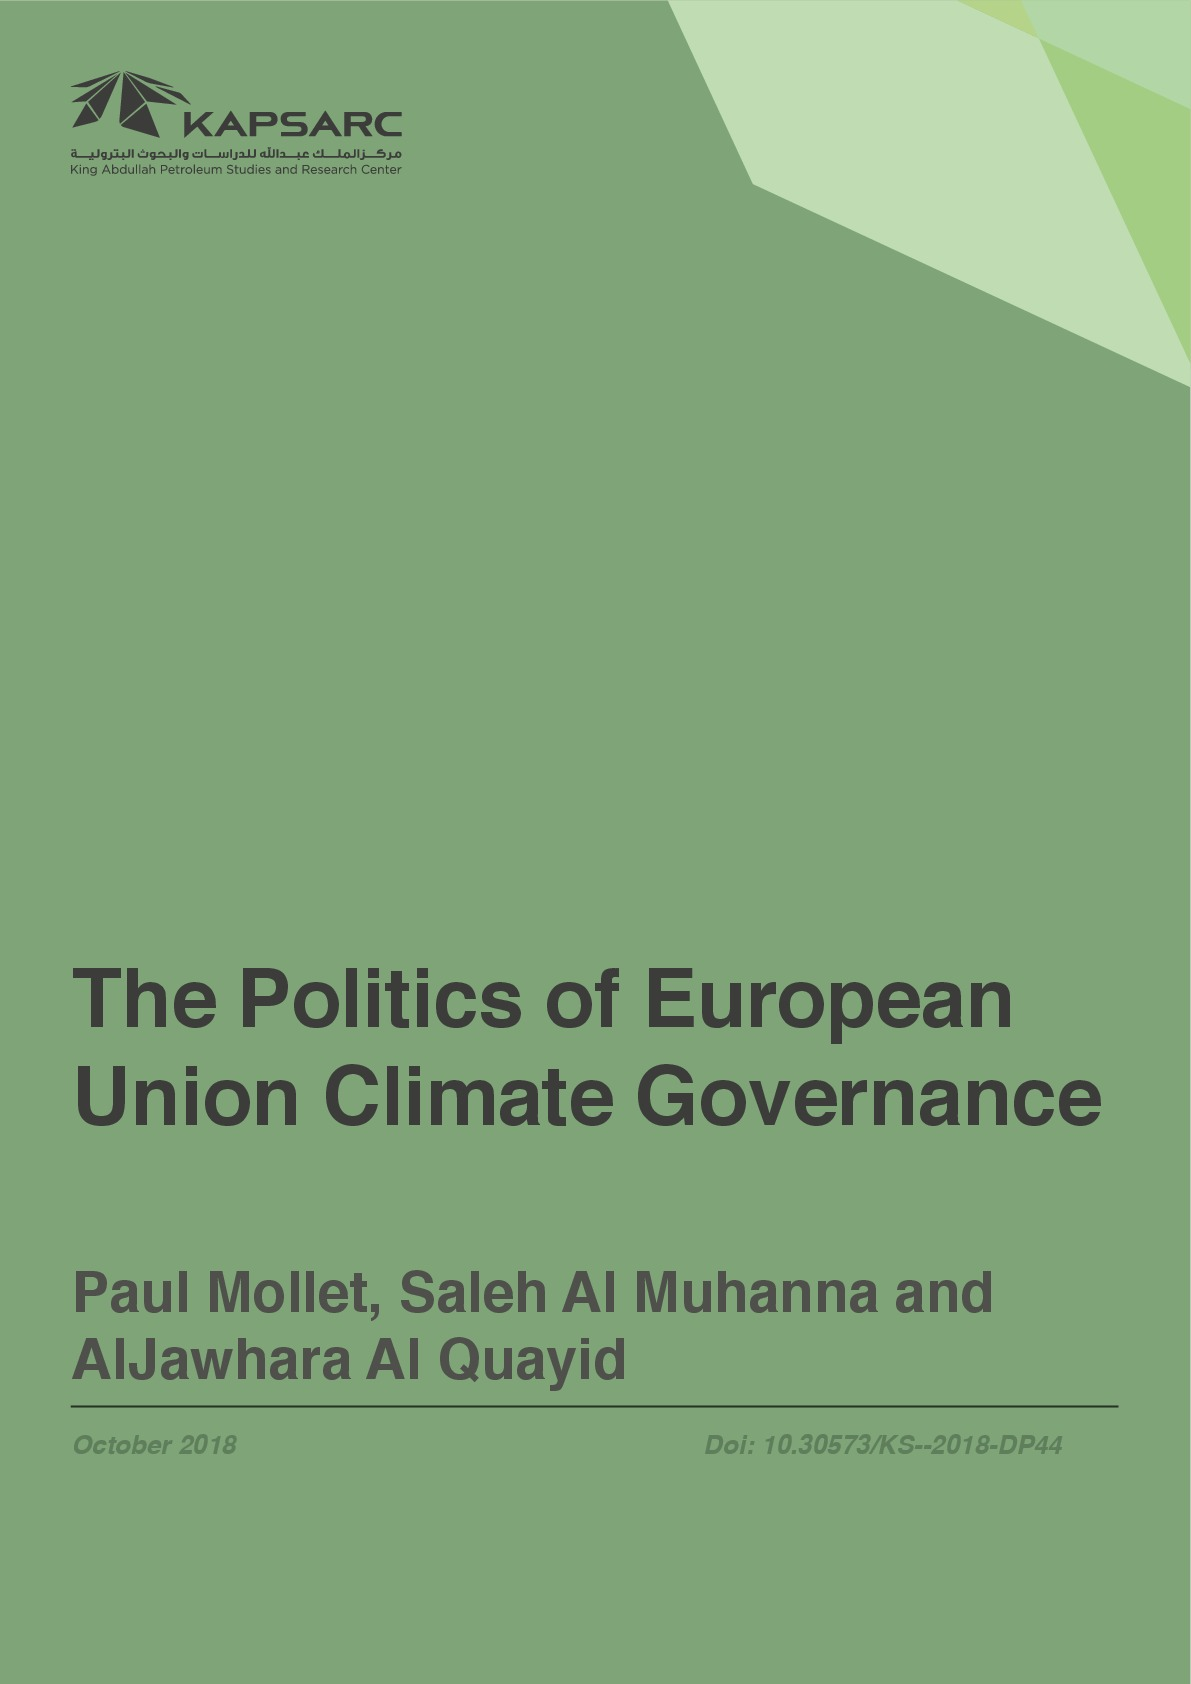 The Politics of European Union Climate Governance